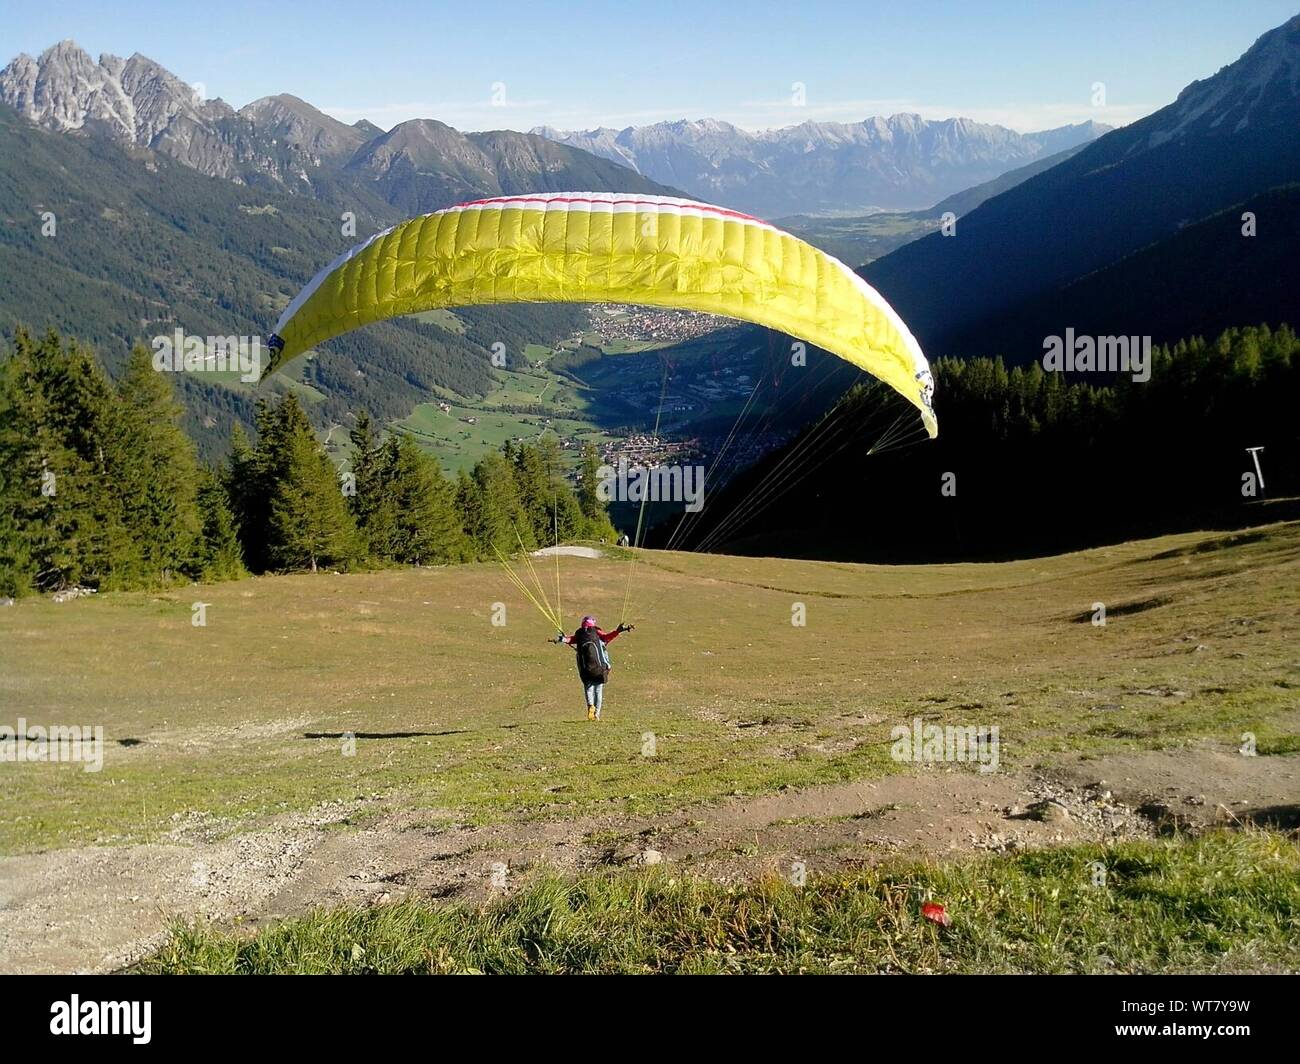 Paraglider Landing On A Grassy Field Against Mountains Stock Photo